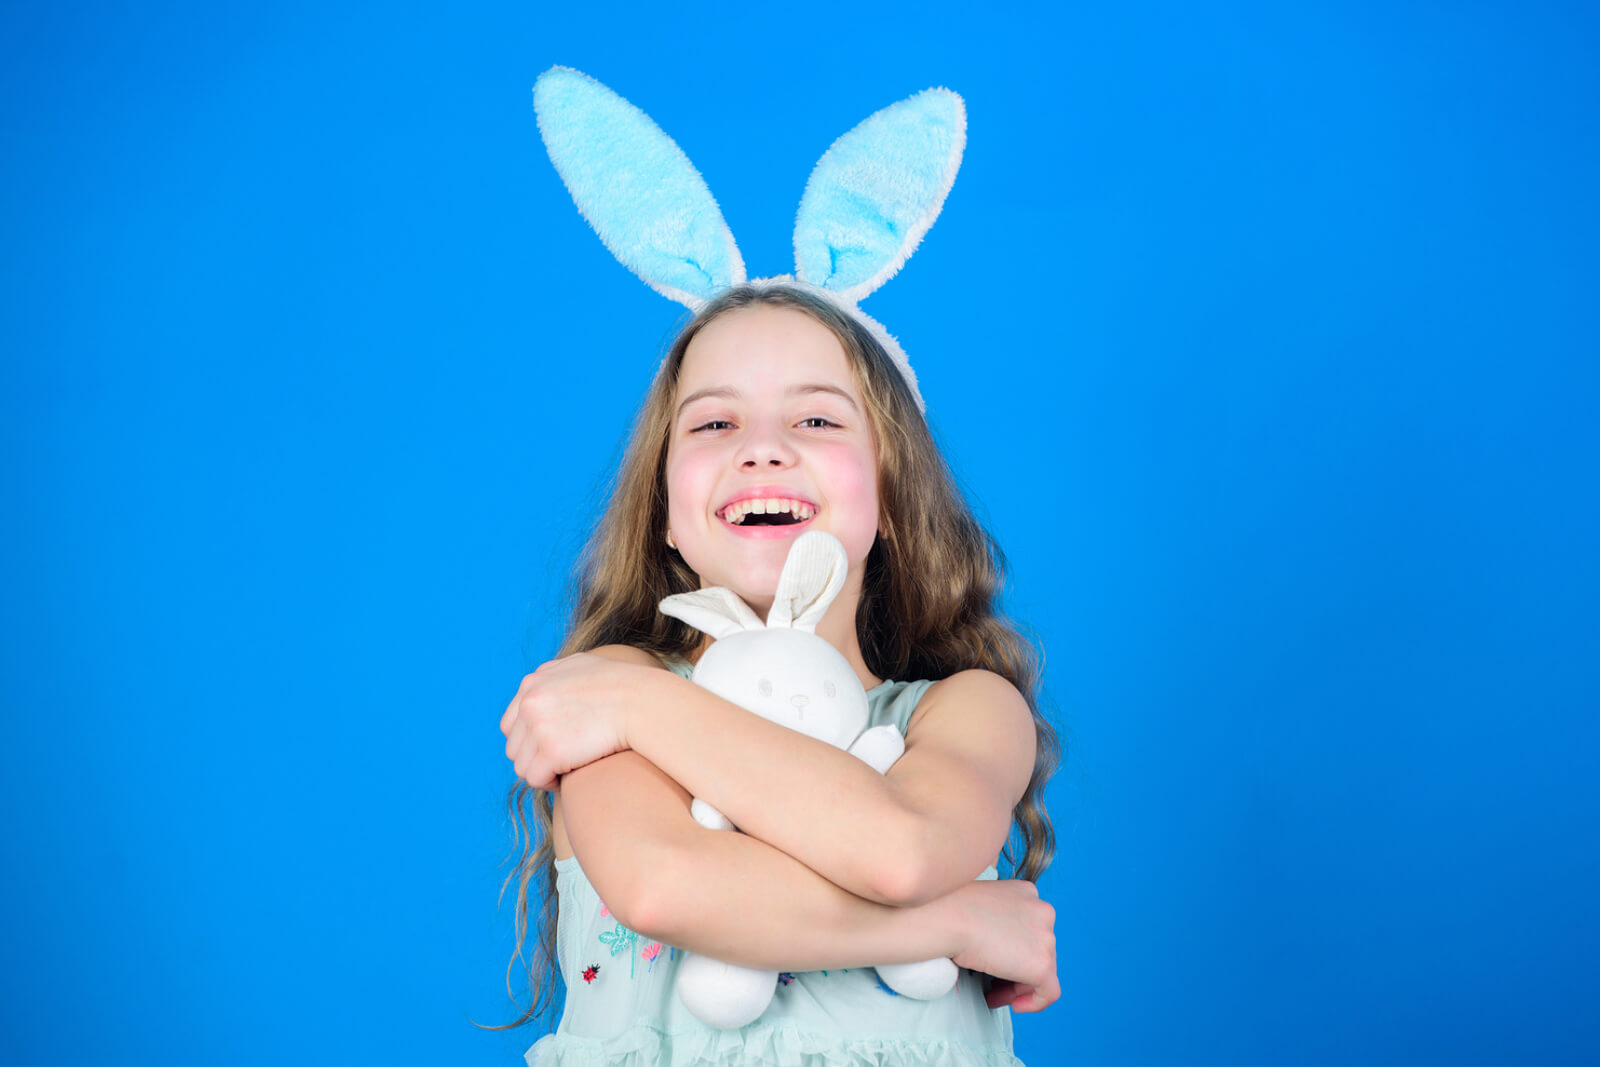 Donate plush Easter bunnies to low income kids